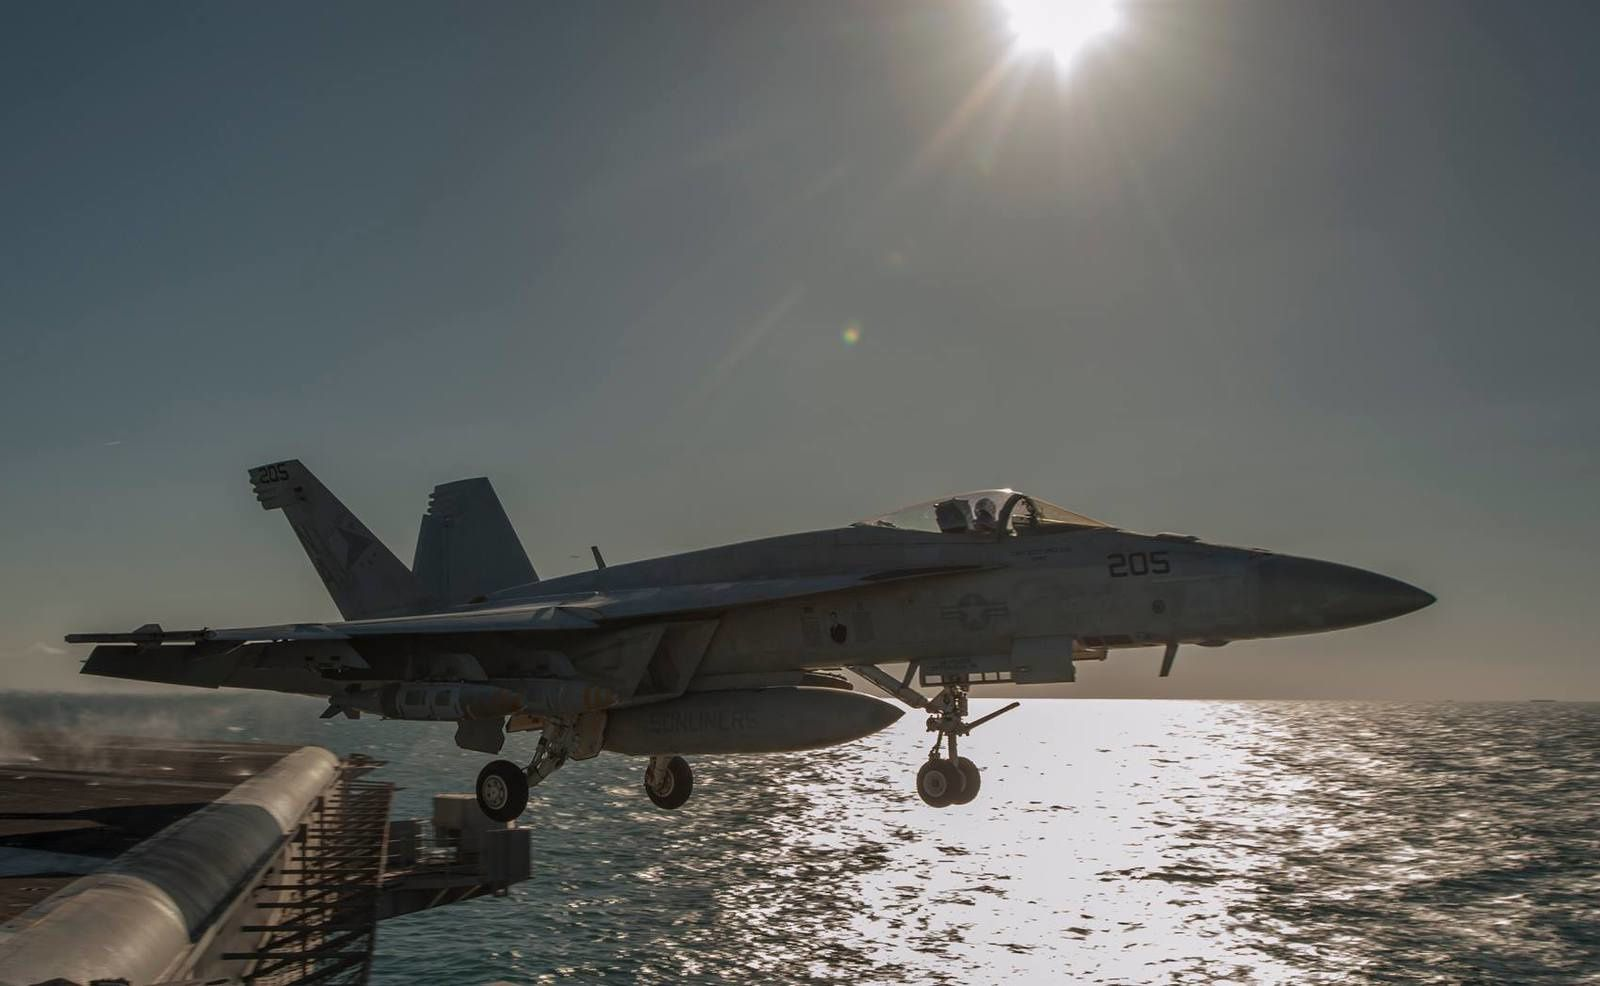 An F/A-18E Super Hornet from the Sunliners of Strike Fighter Squadron (VFA) 81 - photo USS Carl Vinson